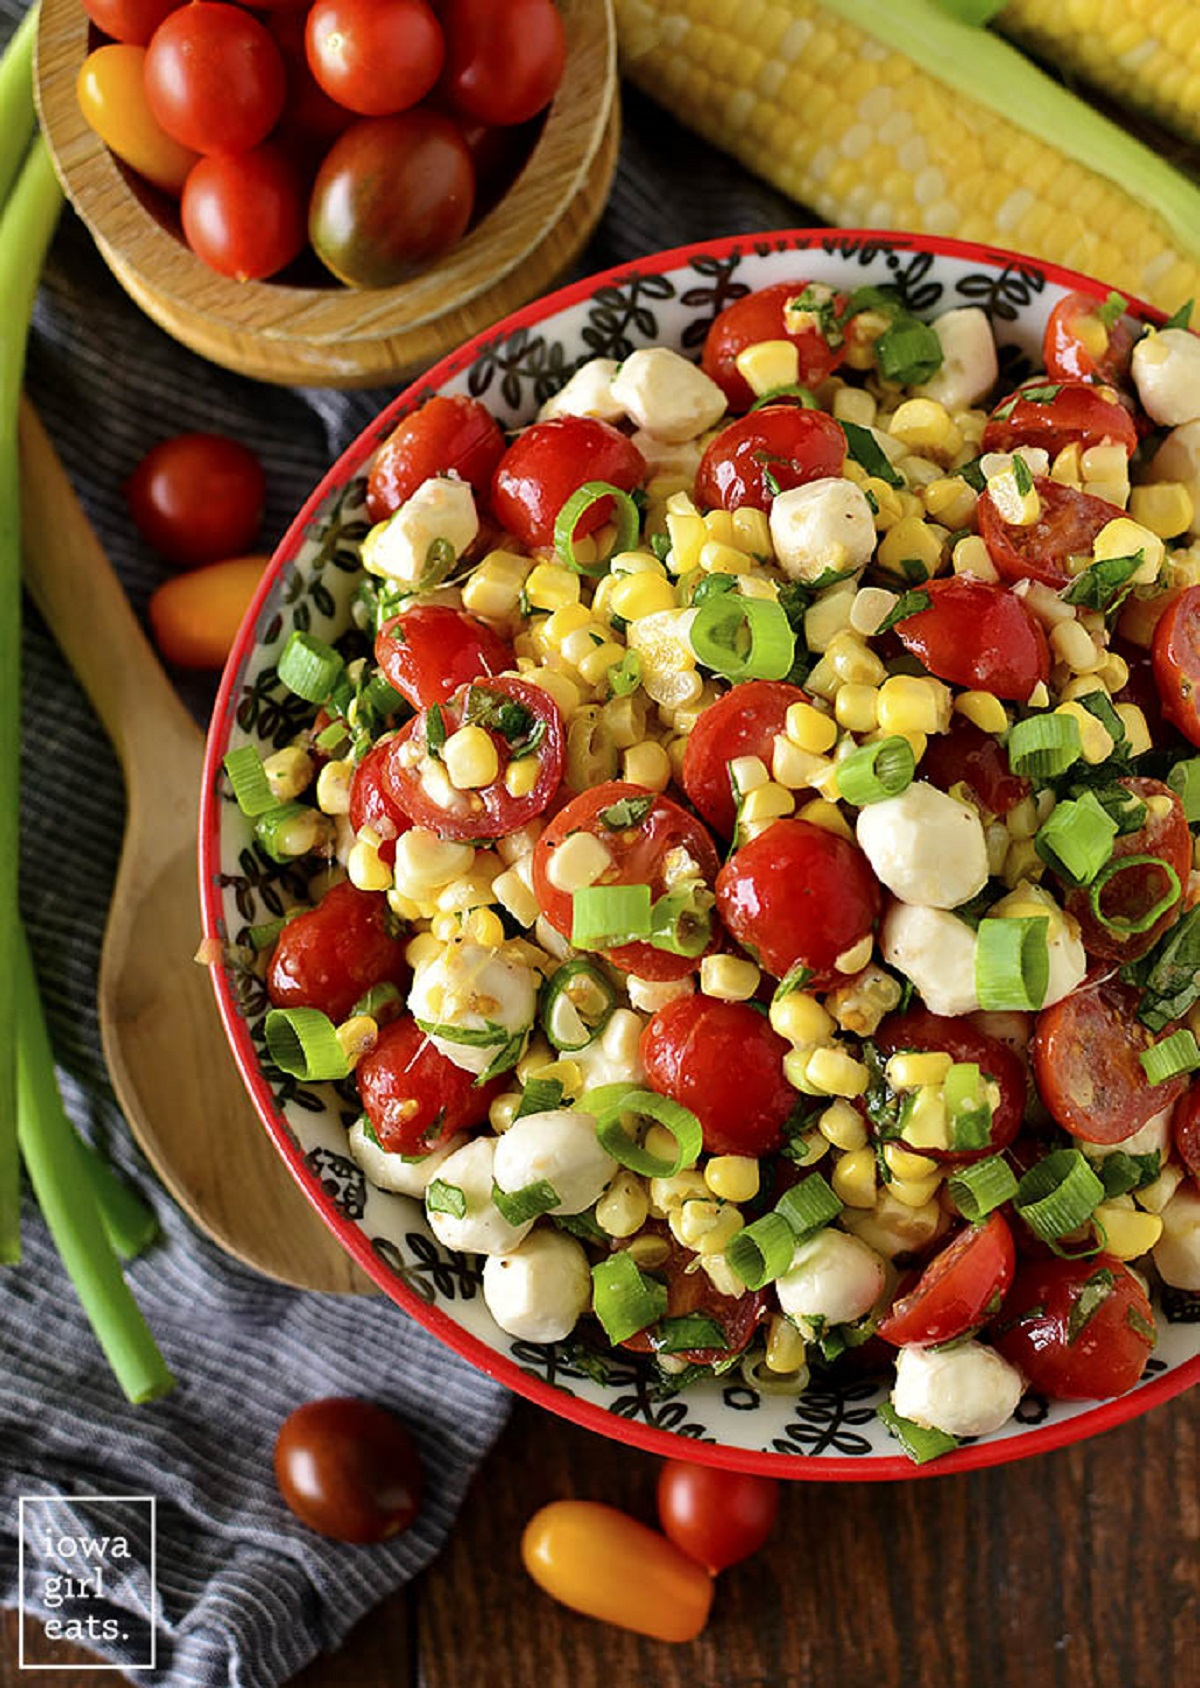 Sweet corn Caprese salad in a white an red bowl on a wooden board.